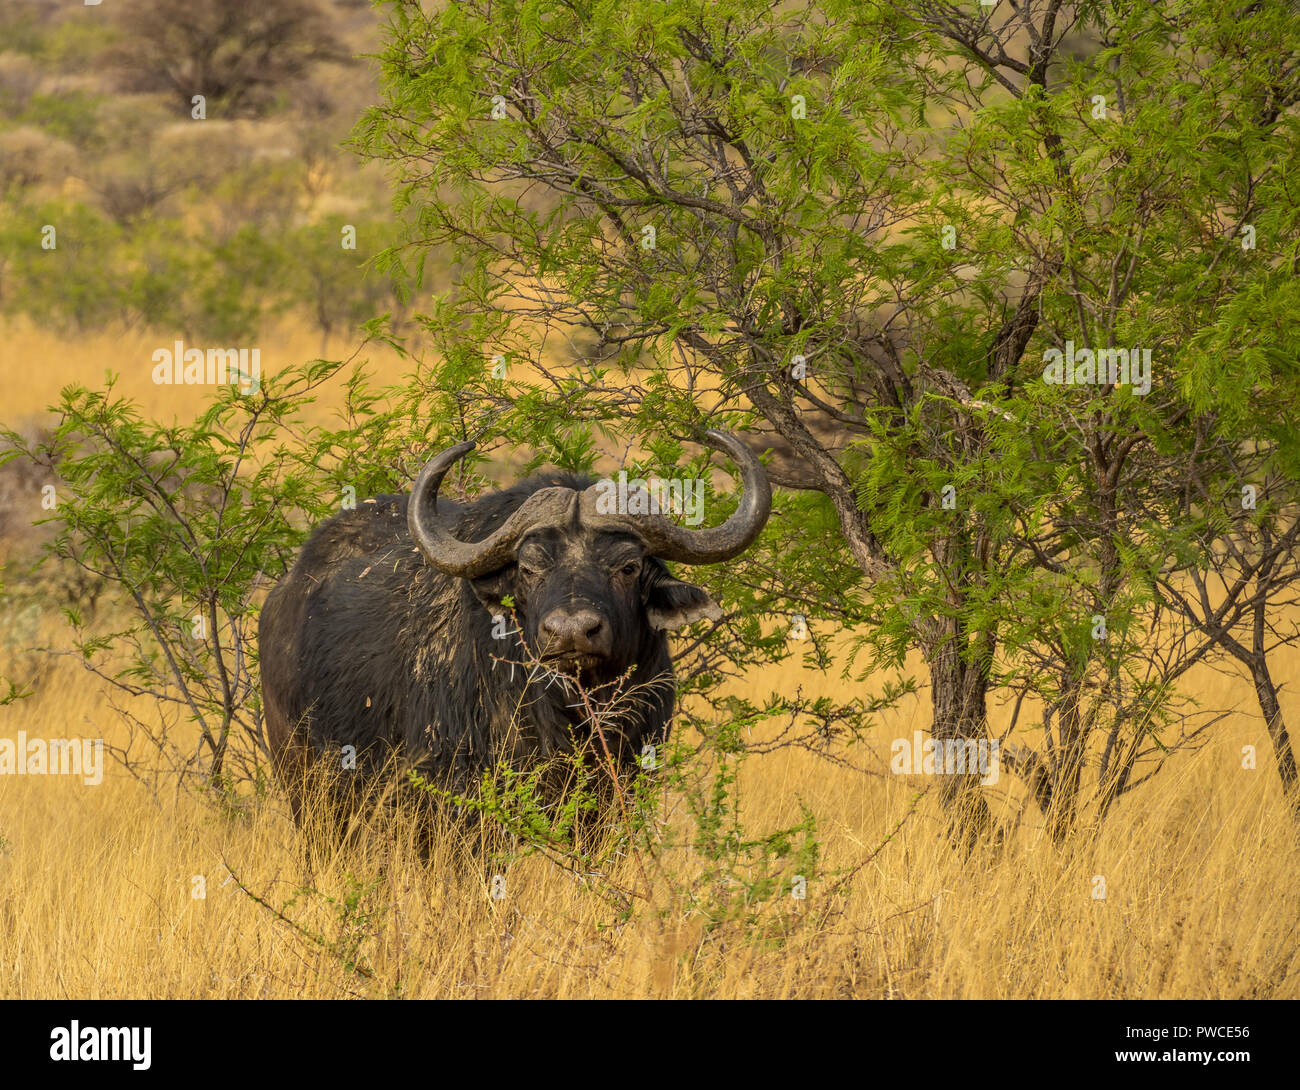 A large Cape buffalo seeks shelter from the sun under a thorn tree on the plains in Africa image with copy space in landscape format - Stock Image